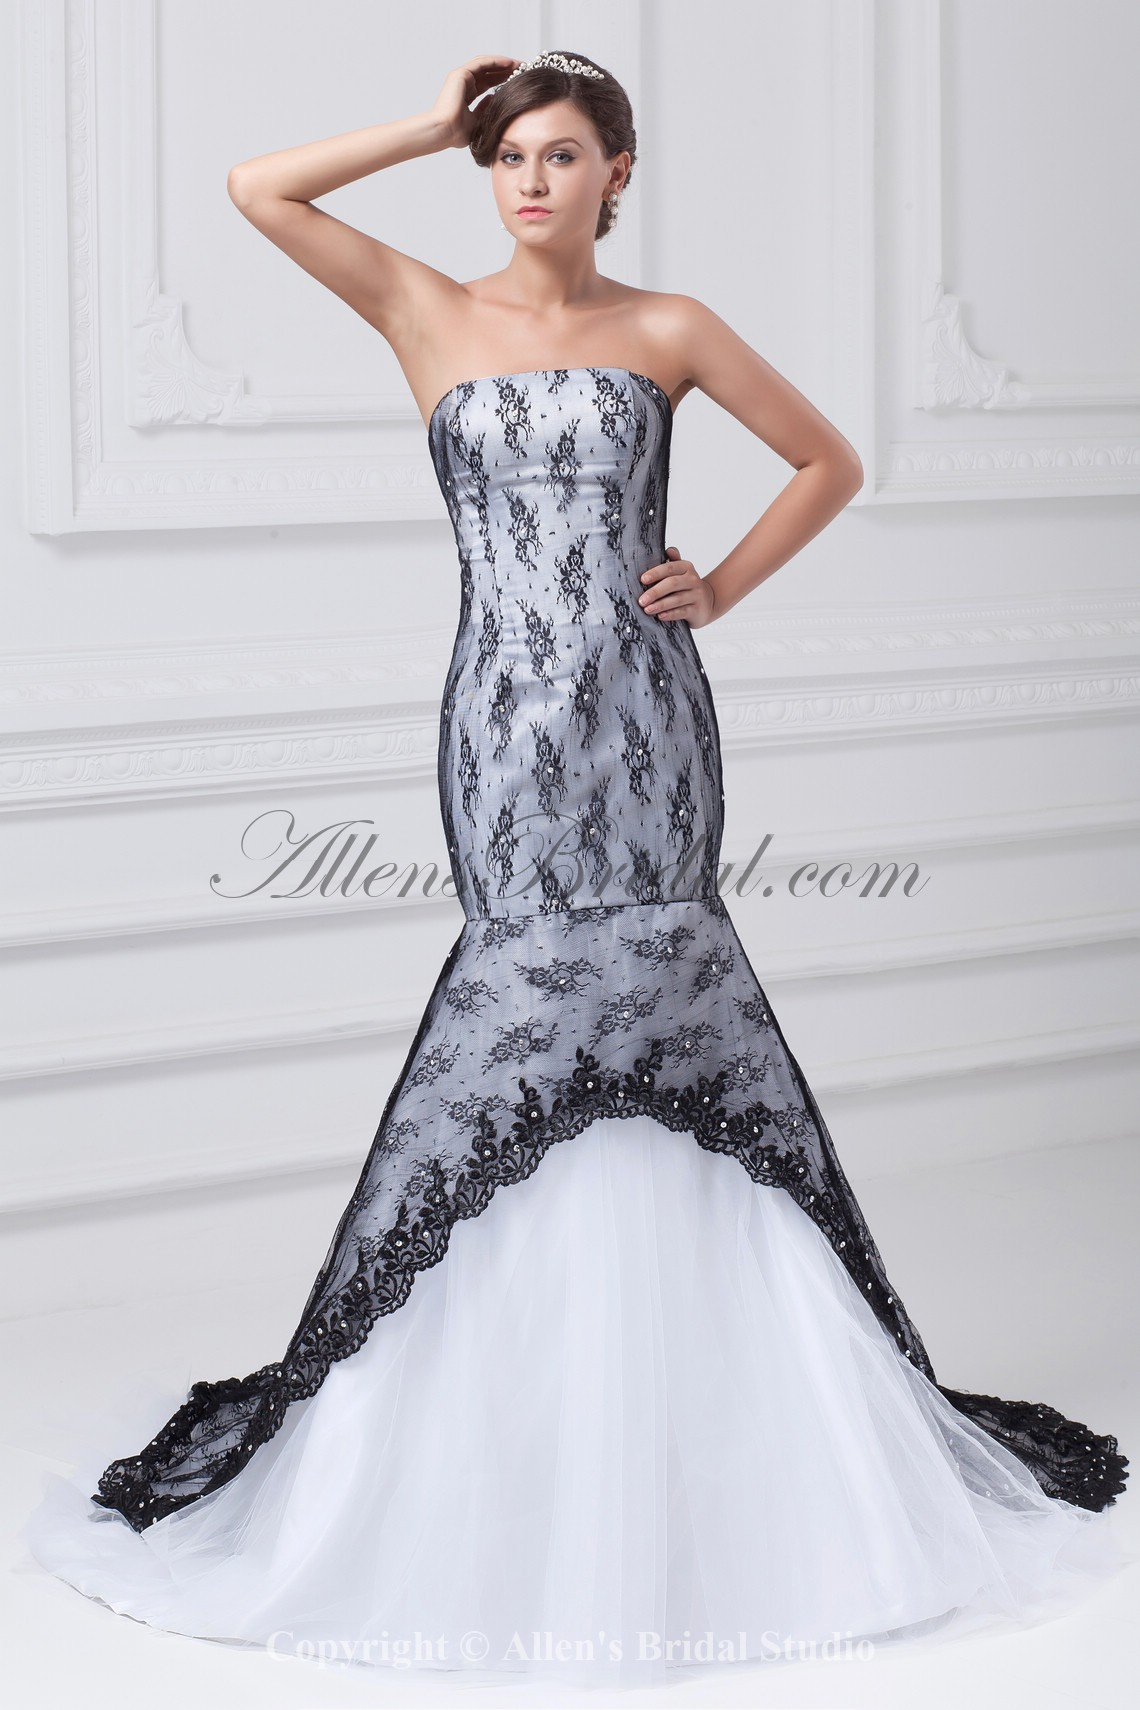 /883-7076/satin-and-lace-strapless-neckline-floor-length-mermaid-wedding-dress.jpg